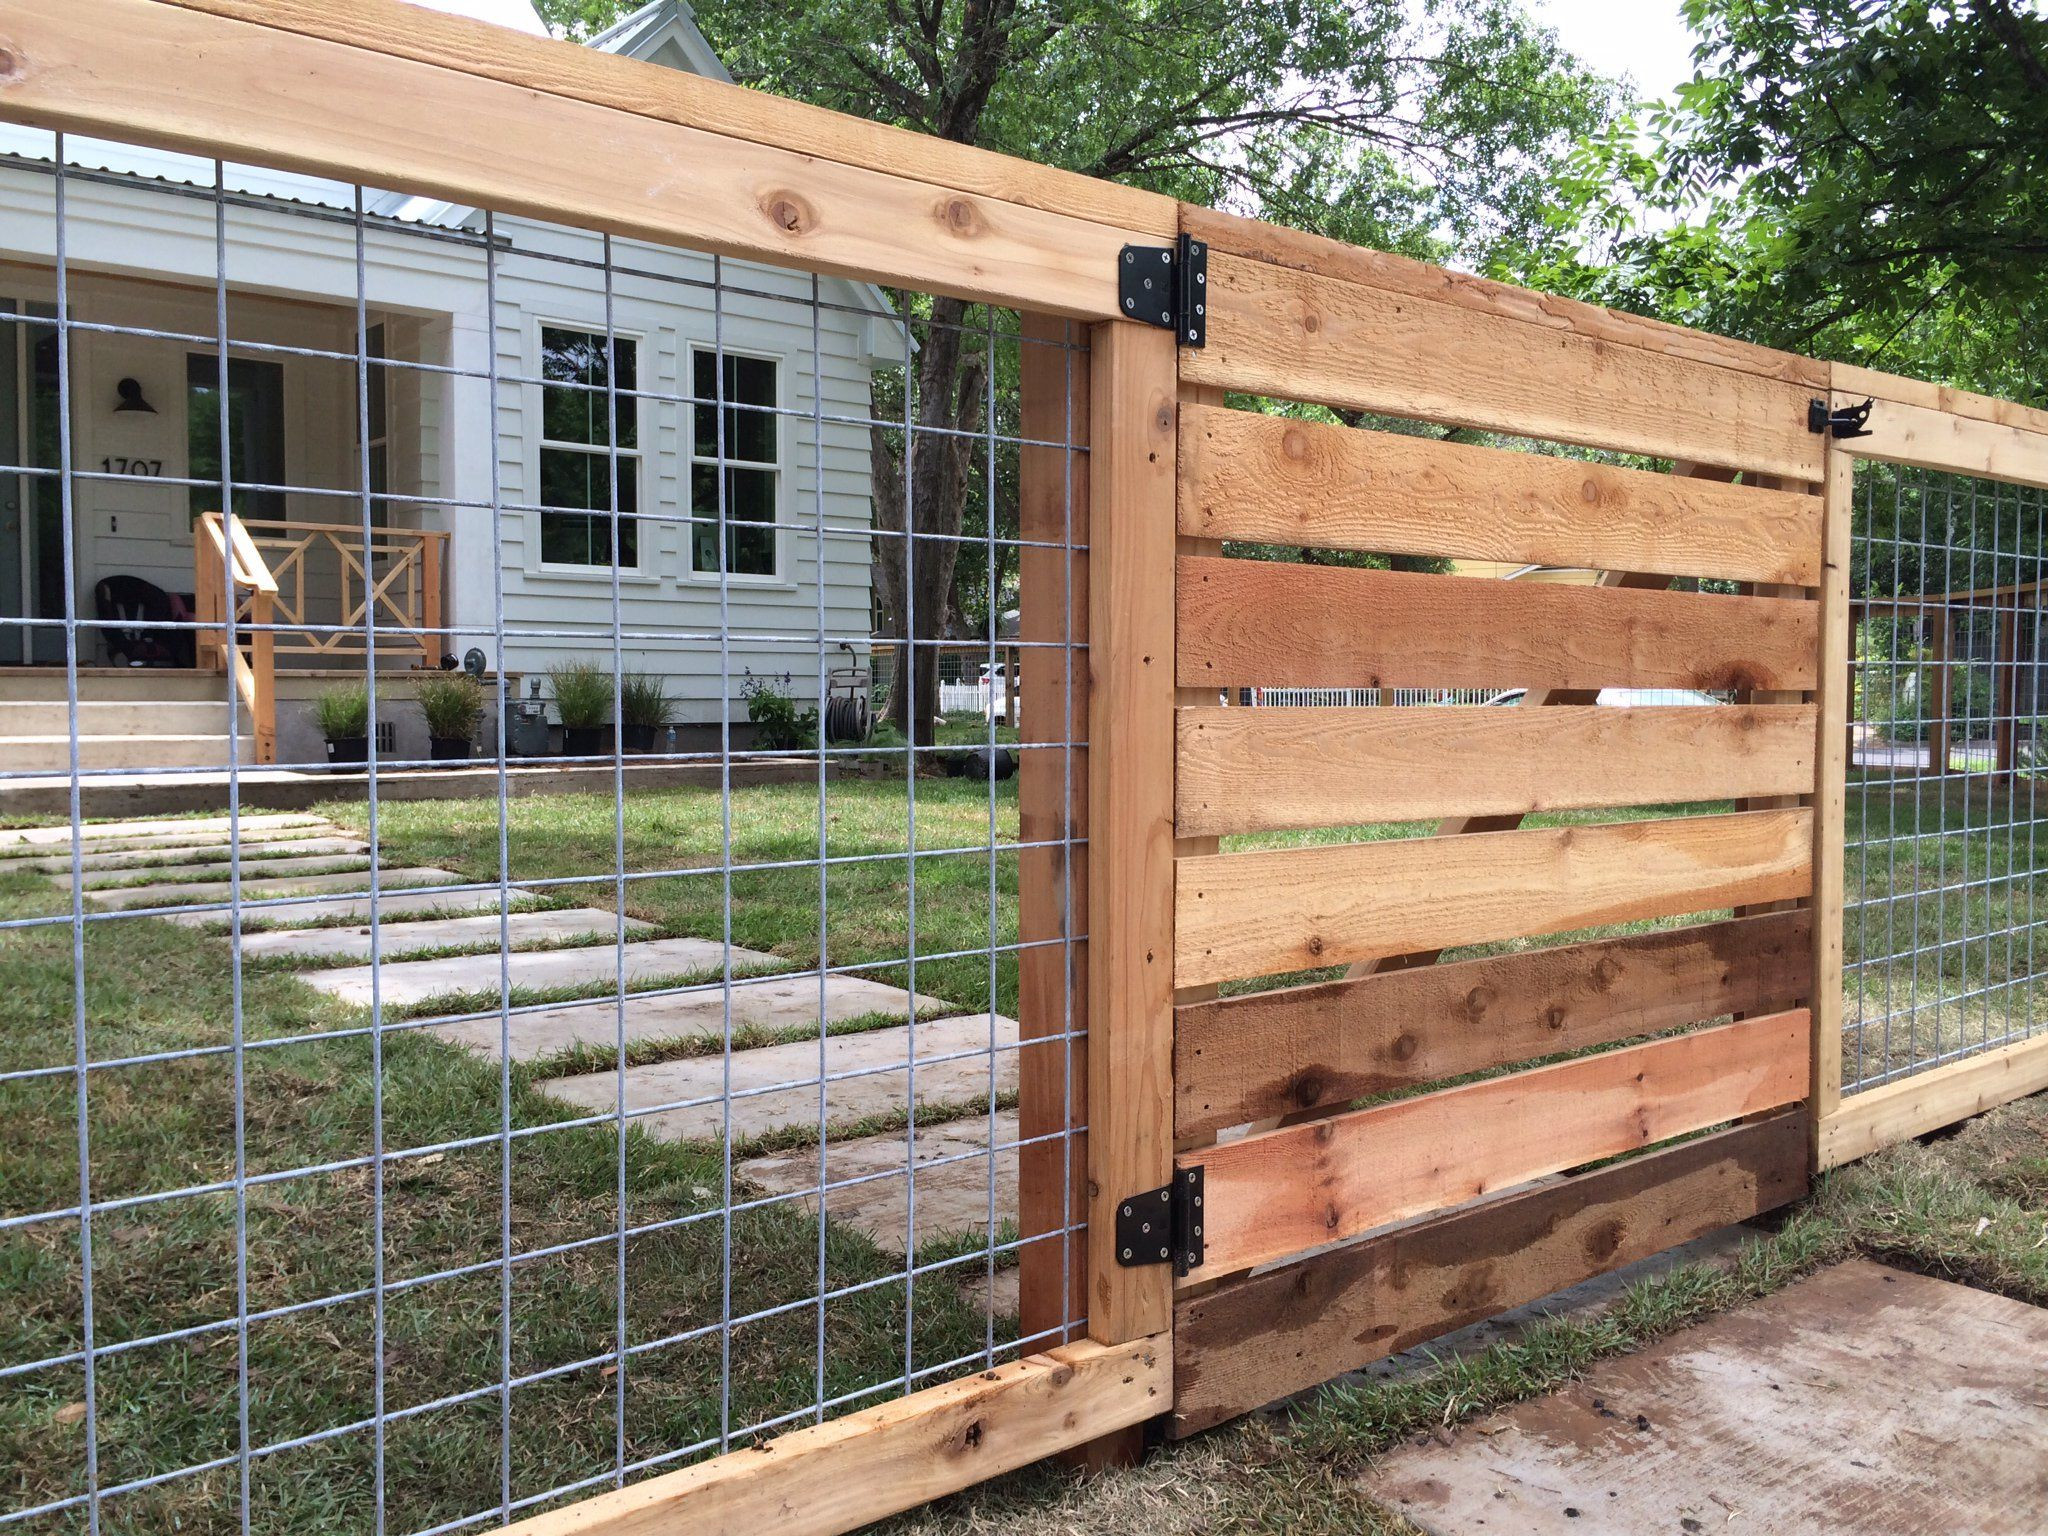 Best ideas about Hog Wire Fence DIY . Save or Pin 17 Awesome Hog Wire Fence Design Ideas For Your Backyard Now.